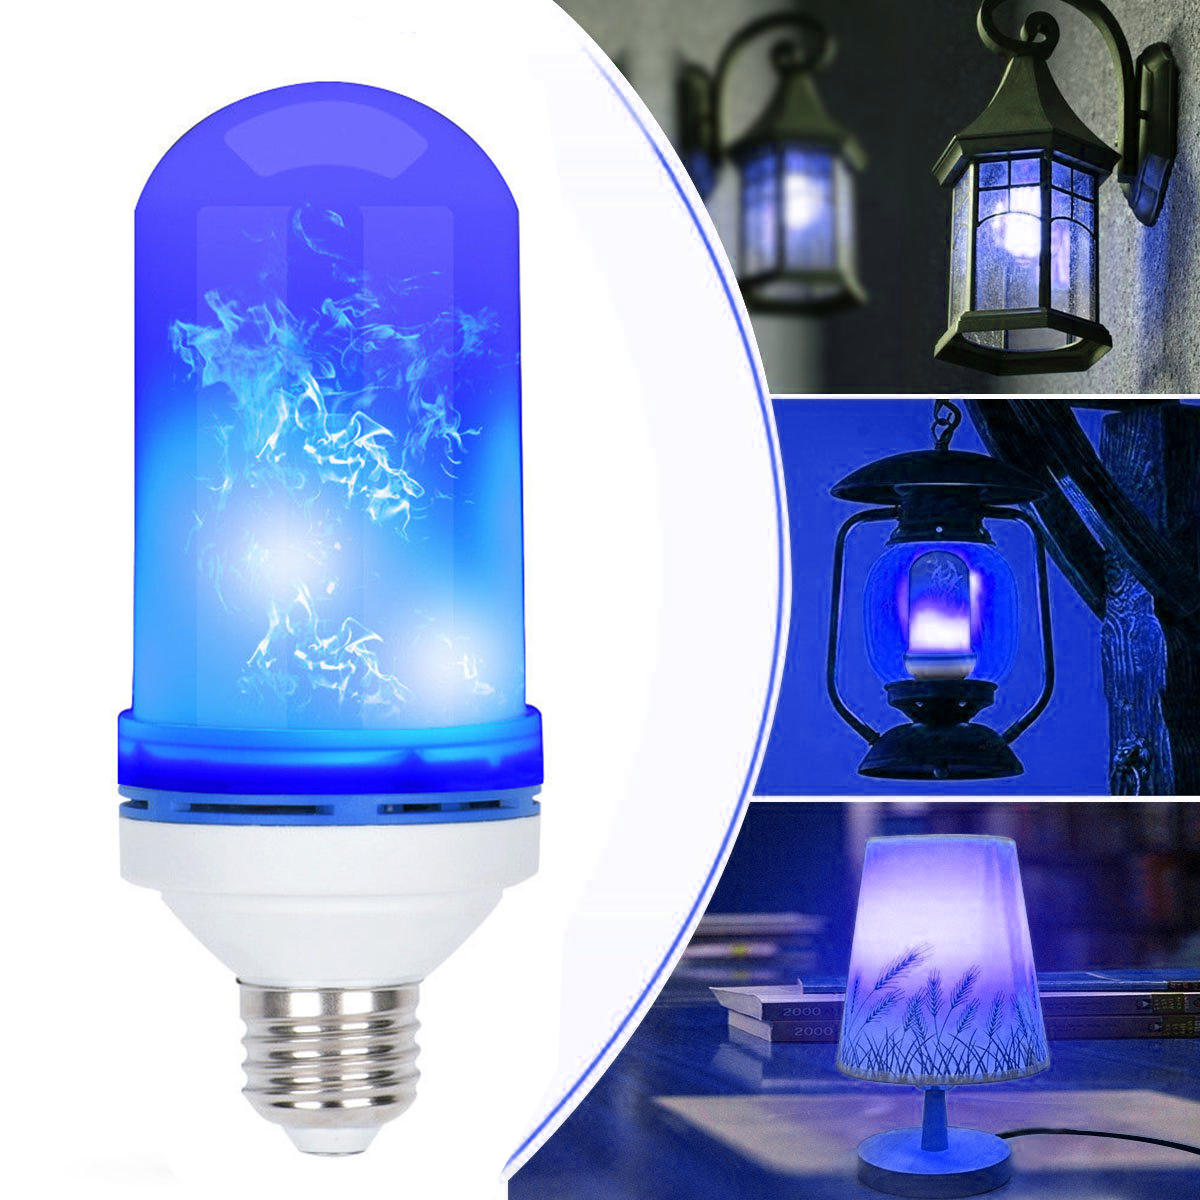 Flame Led Lamp E27 Ac85 265v 4 Modes E27 Blue Led Flicker Flame Light Bulb Simulated Burning Fire Effect Festival Lamp